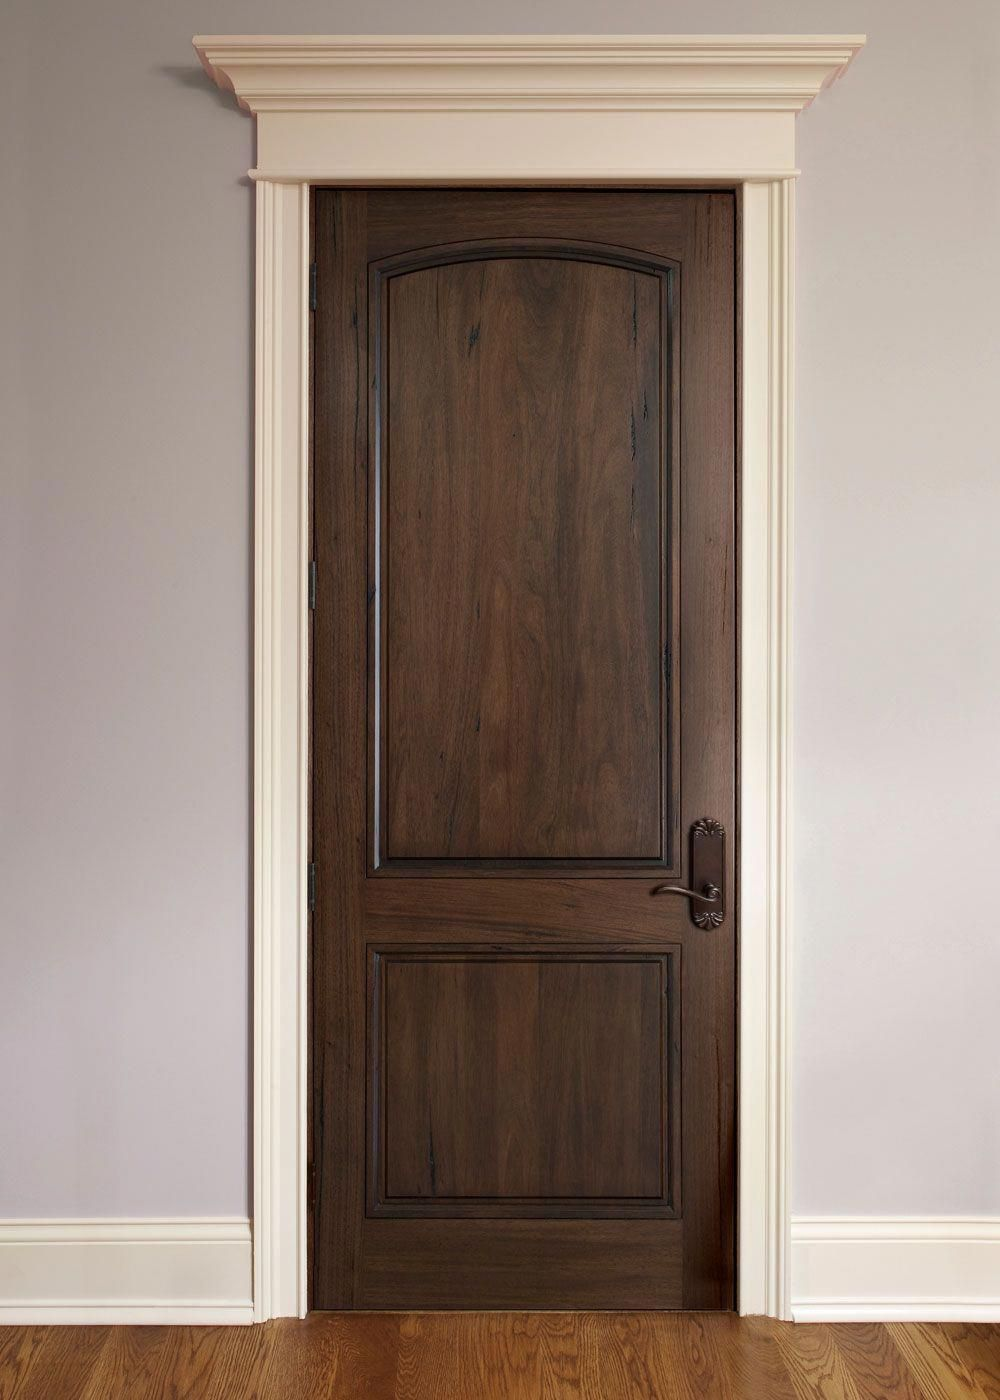 Solid Wood Doors For Sale 4 Panel Solid Wood Interior Doors Interior Wood Door Styles 20190127 Wood Doors Interior Doors Interior Custom Interior Doors